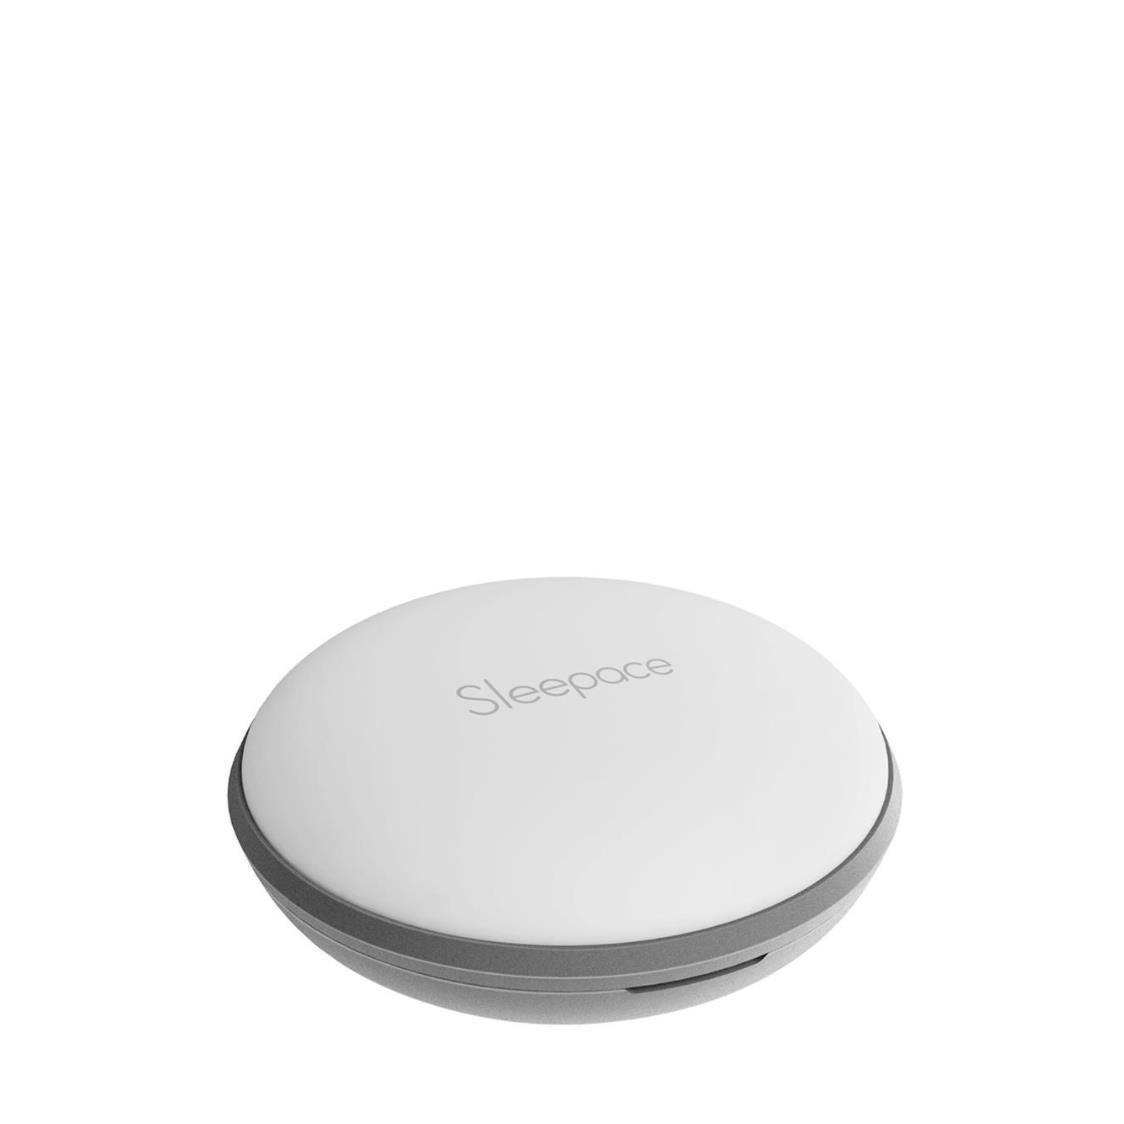 Sleepace Sleep Dot Mini Sleep Tracker